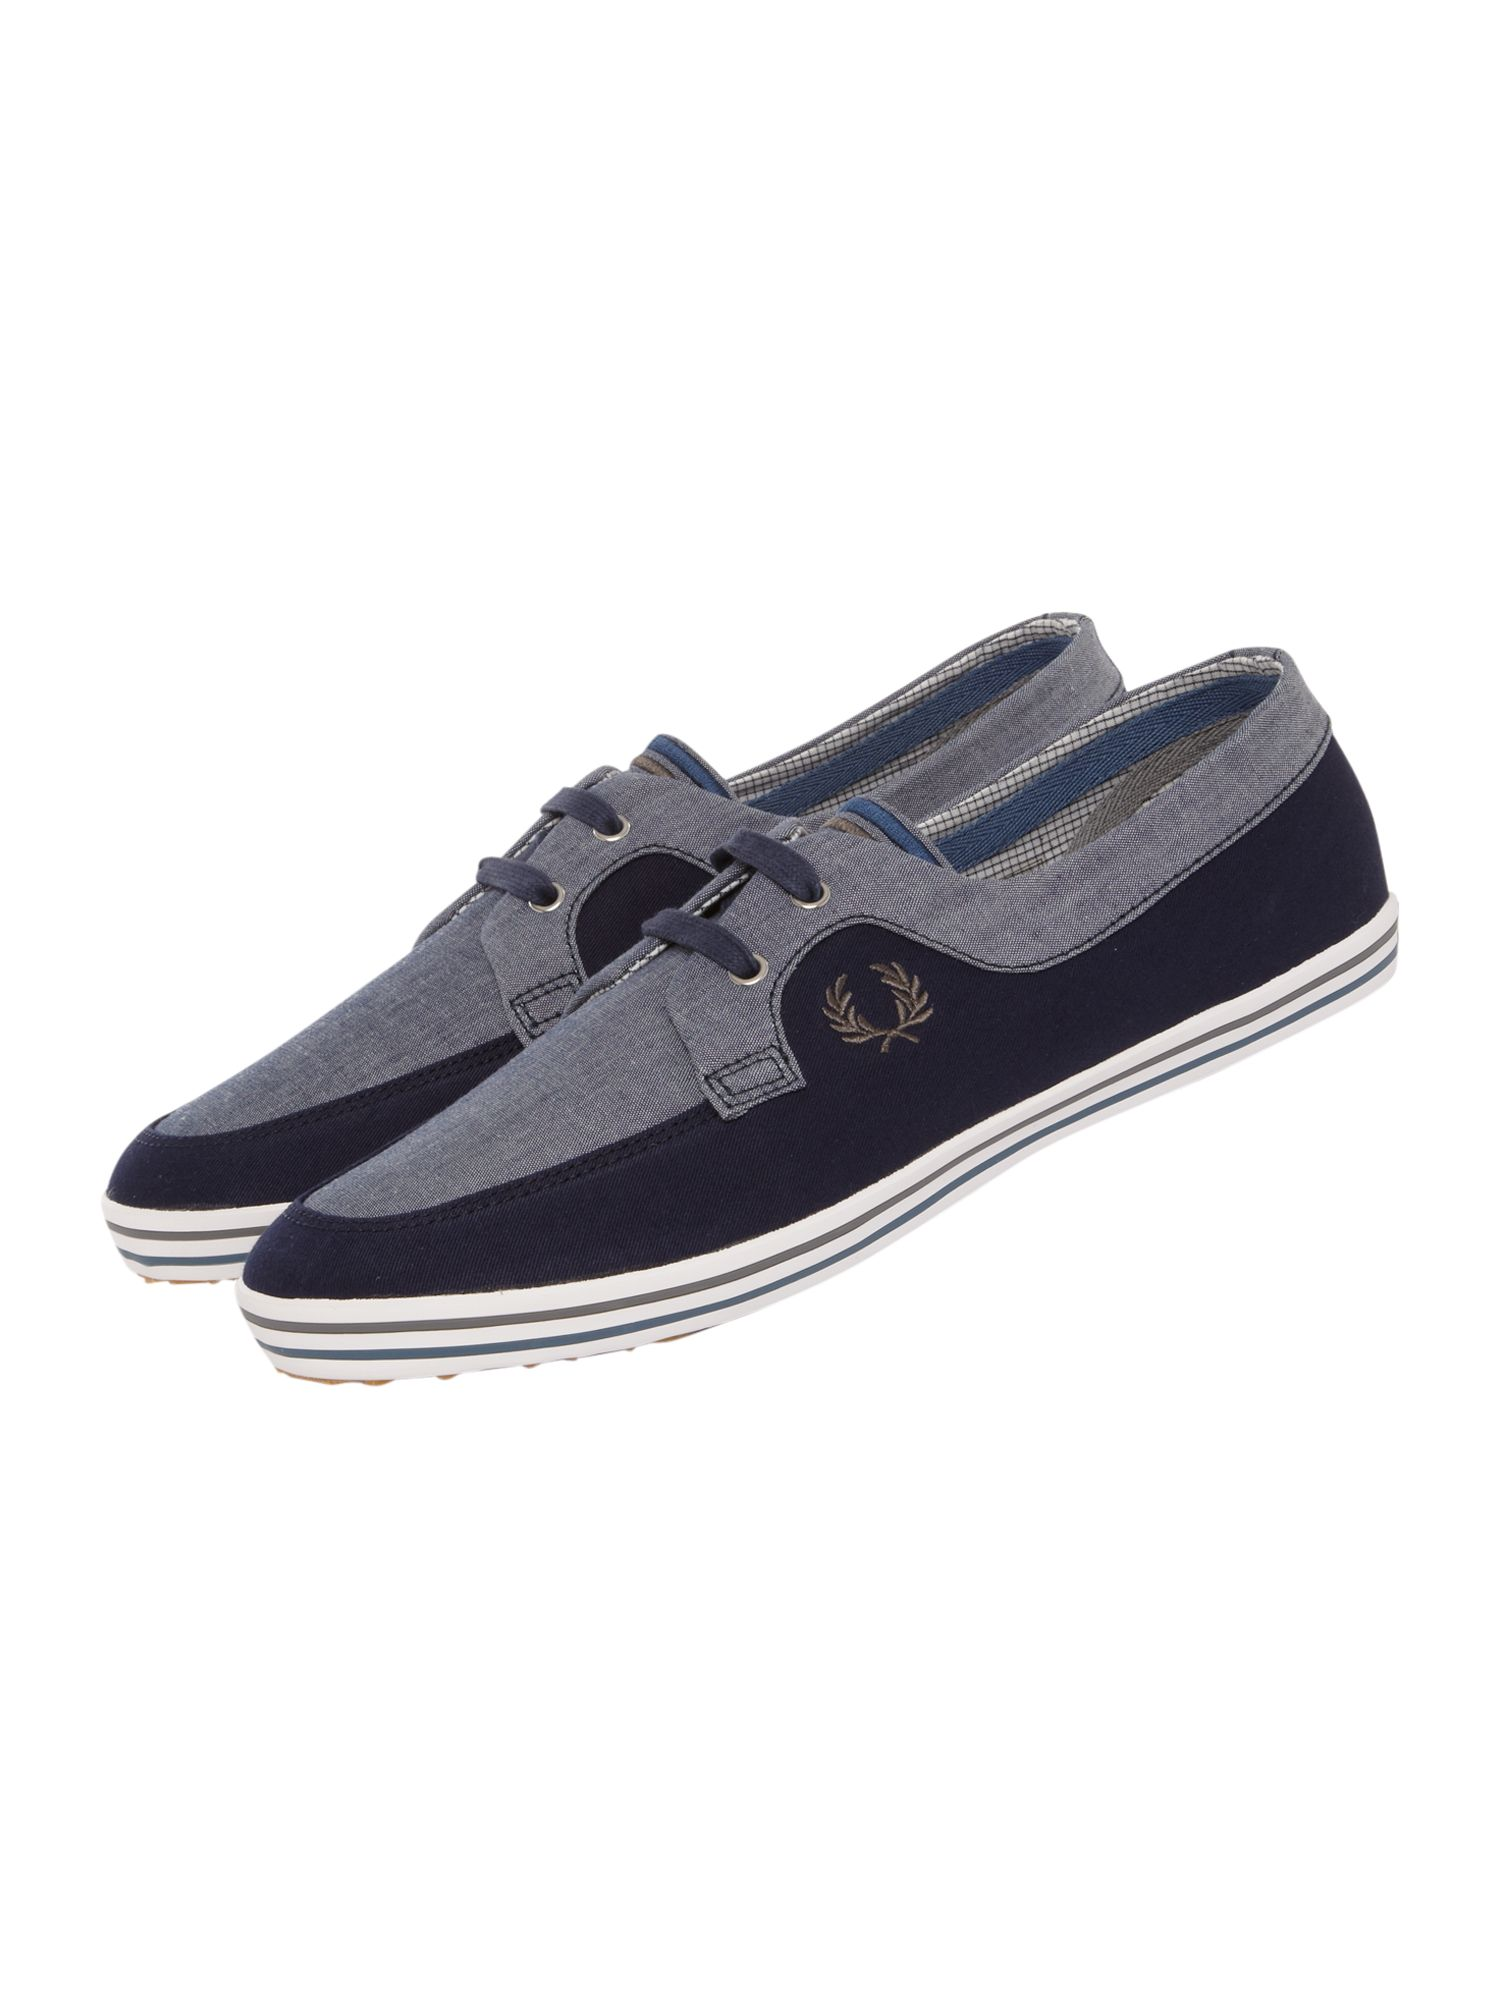 Fred Perry Low Top Drury Chambray Trainer, Navy